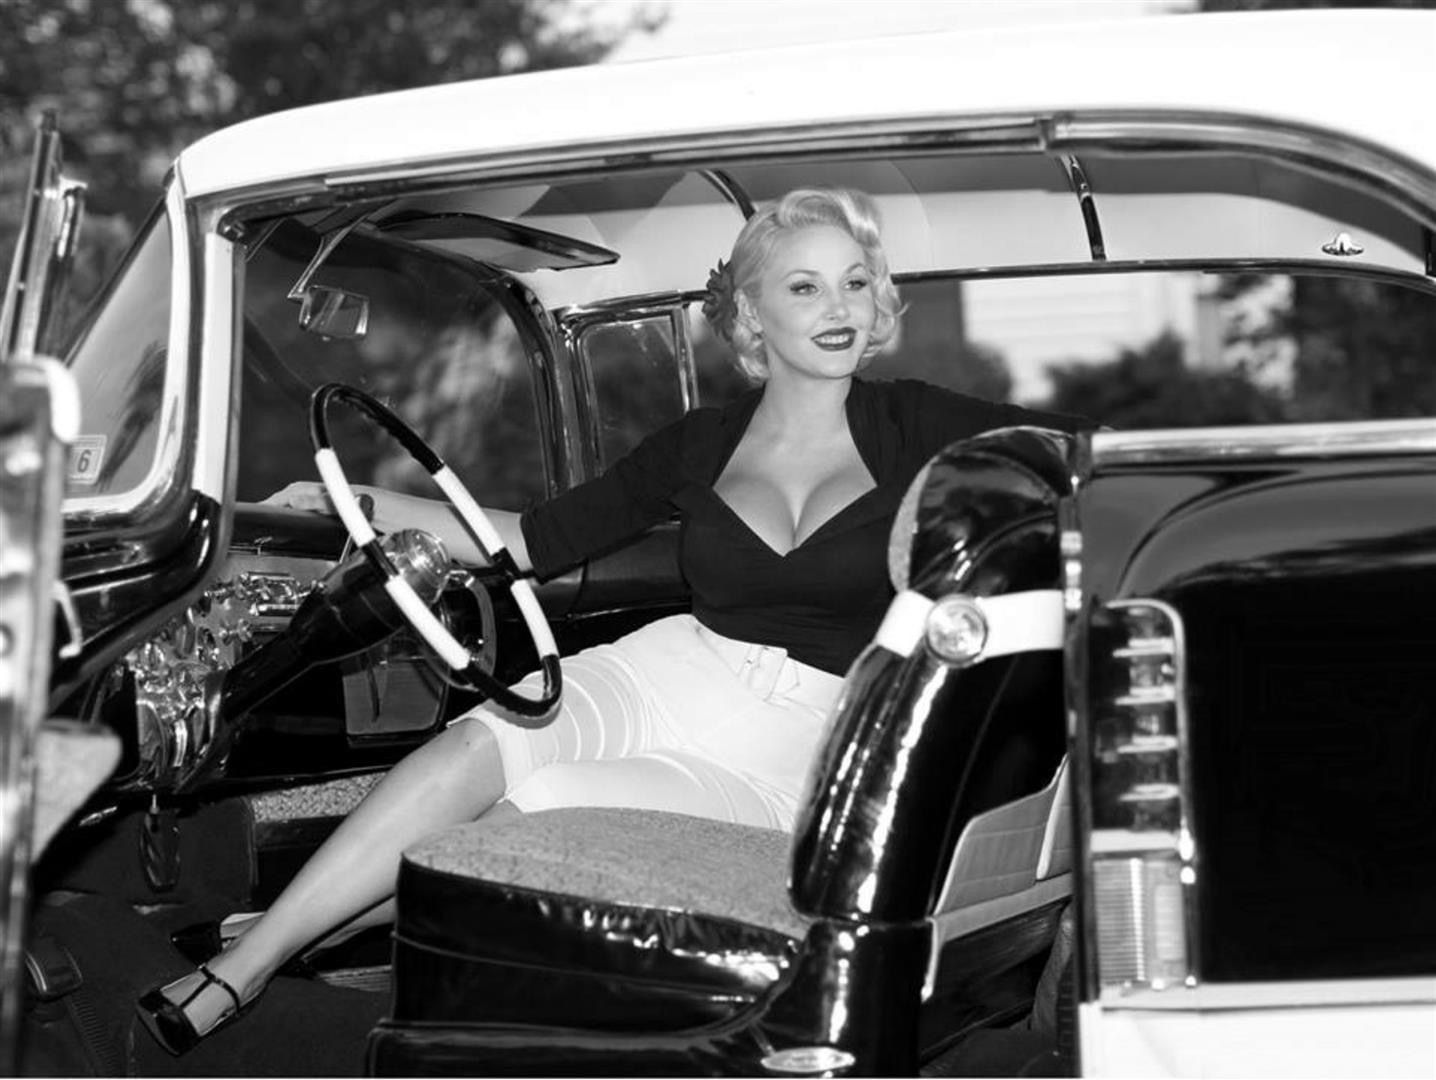 Pin on Vintage Pin Ups with Cars